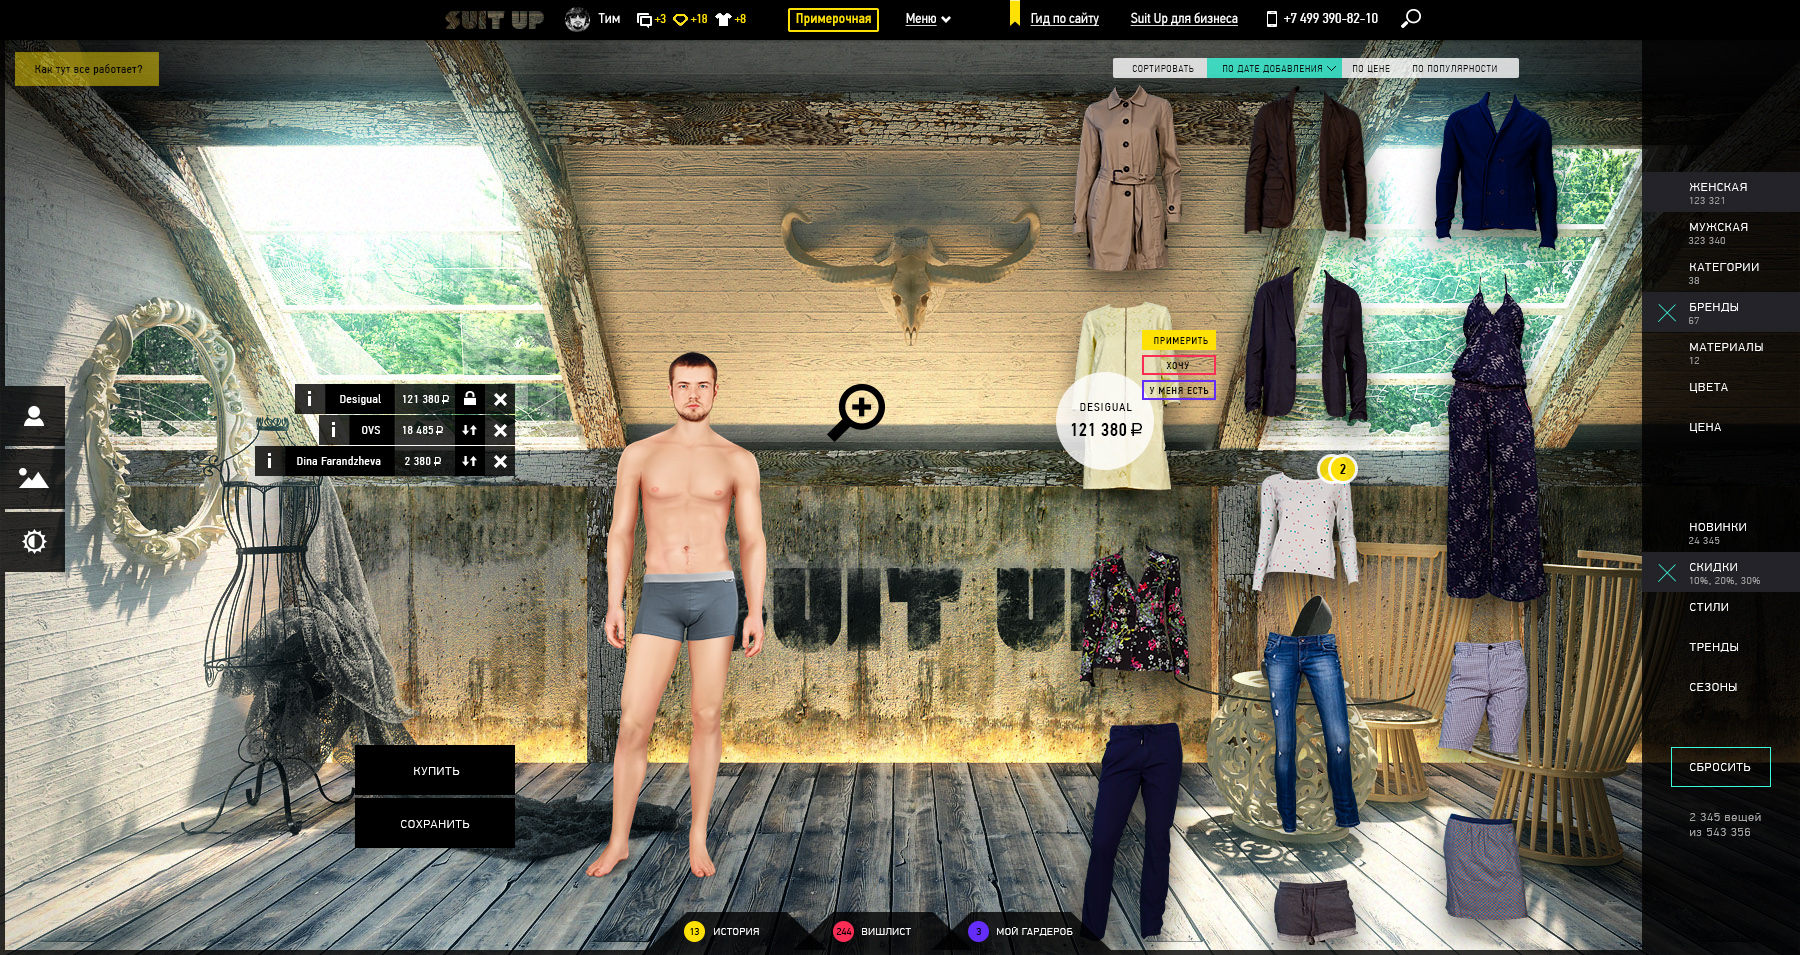 Saas 360view solution for fashion ecommerce which provides service of fitting and matching clothes in a picture quality!